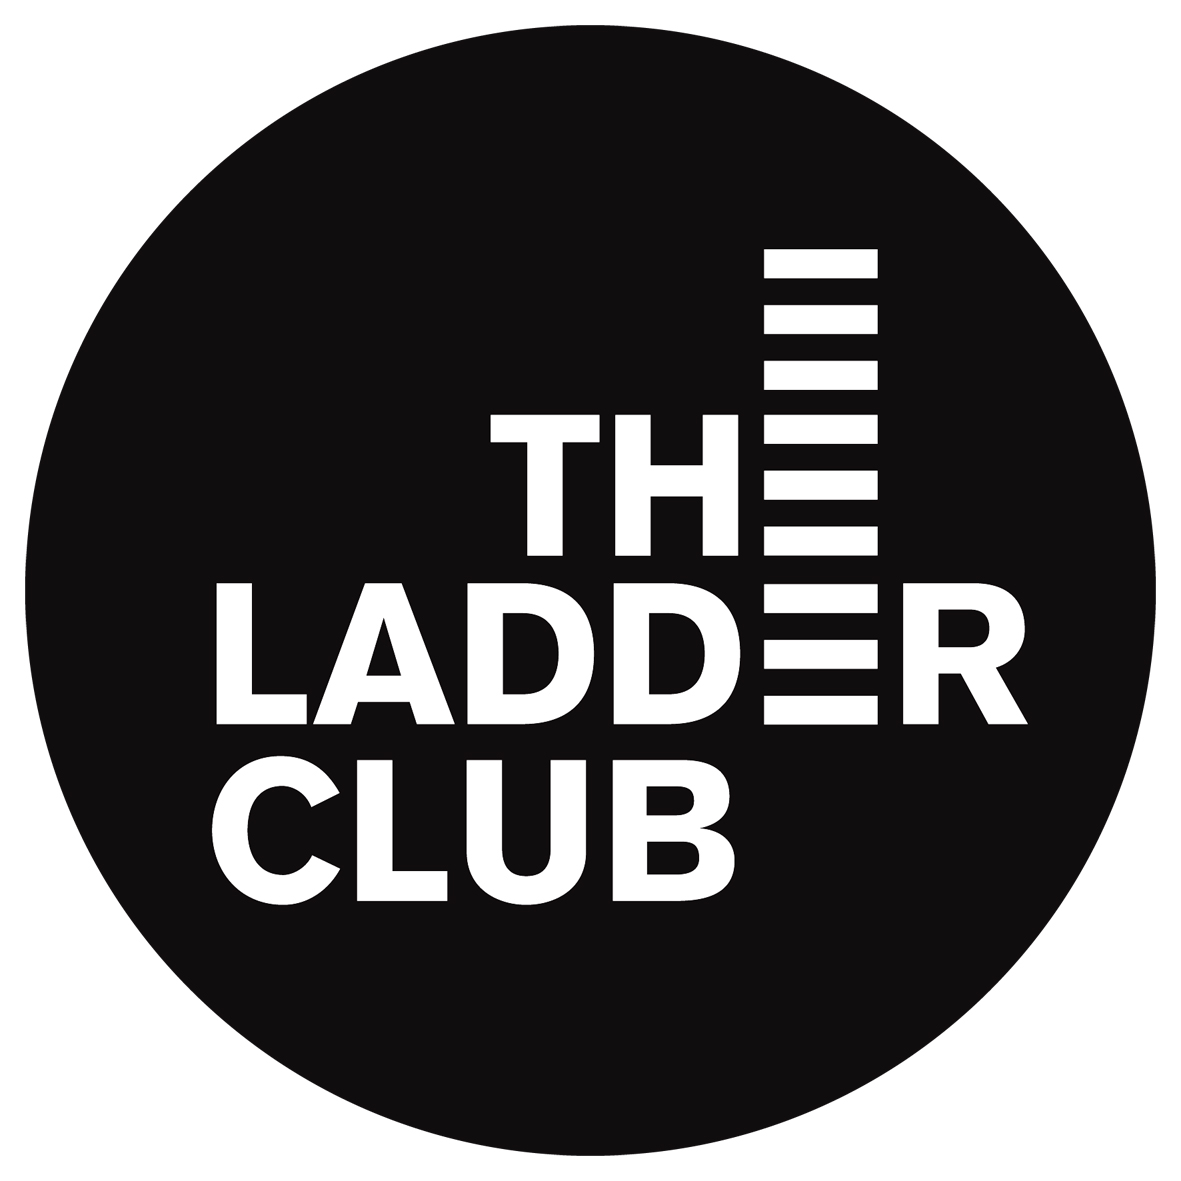 The Ladder Club logo